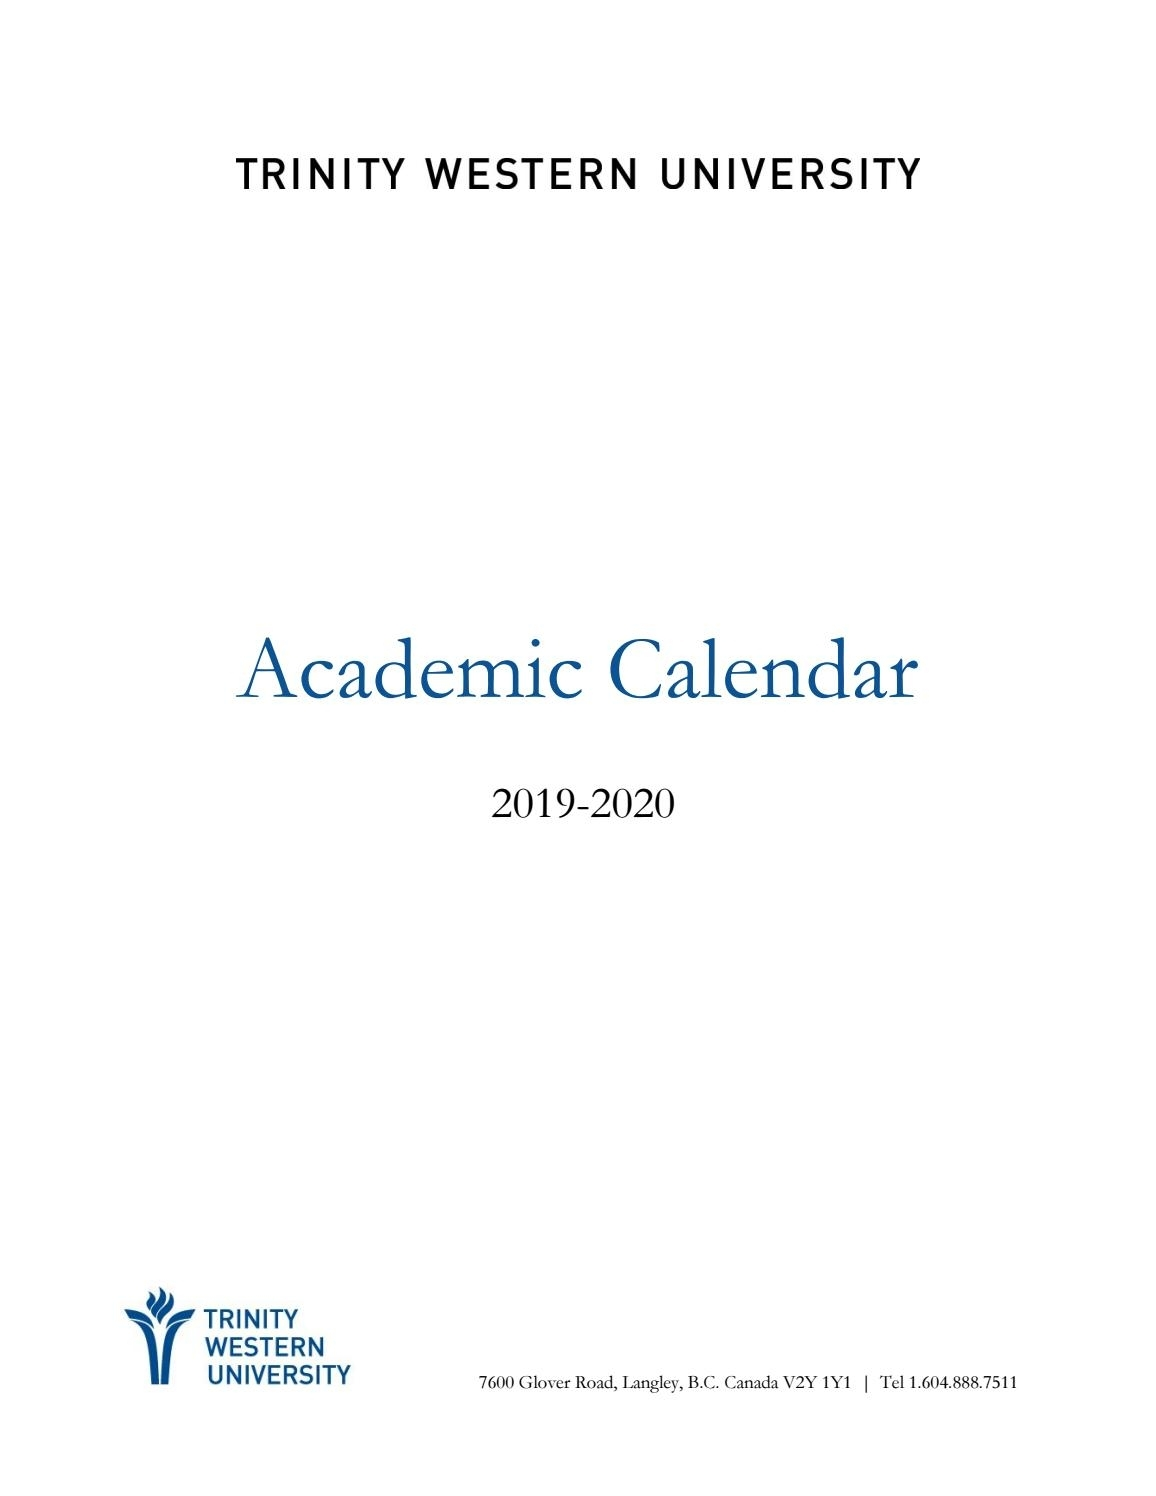 2019-20 Academic Calendartwu - Issuu in Catholic Extension Calendar 2020 Pdf